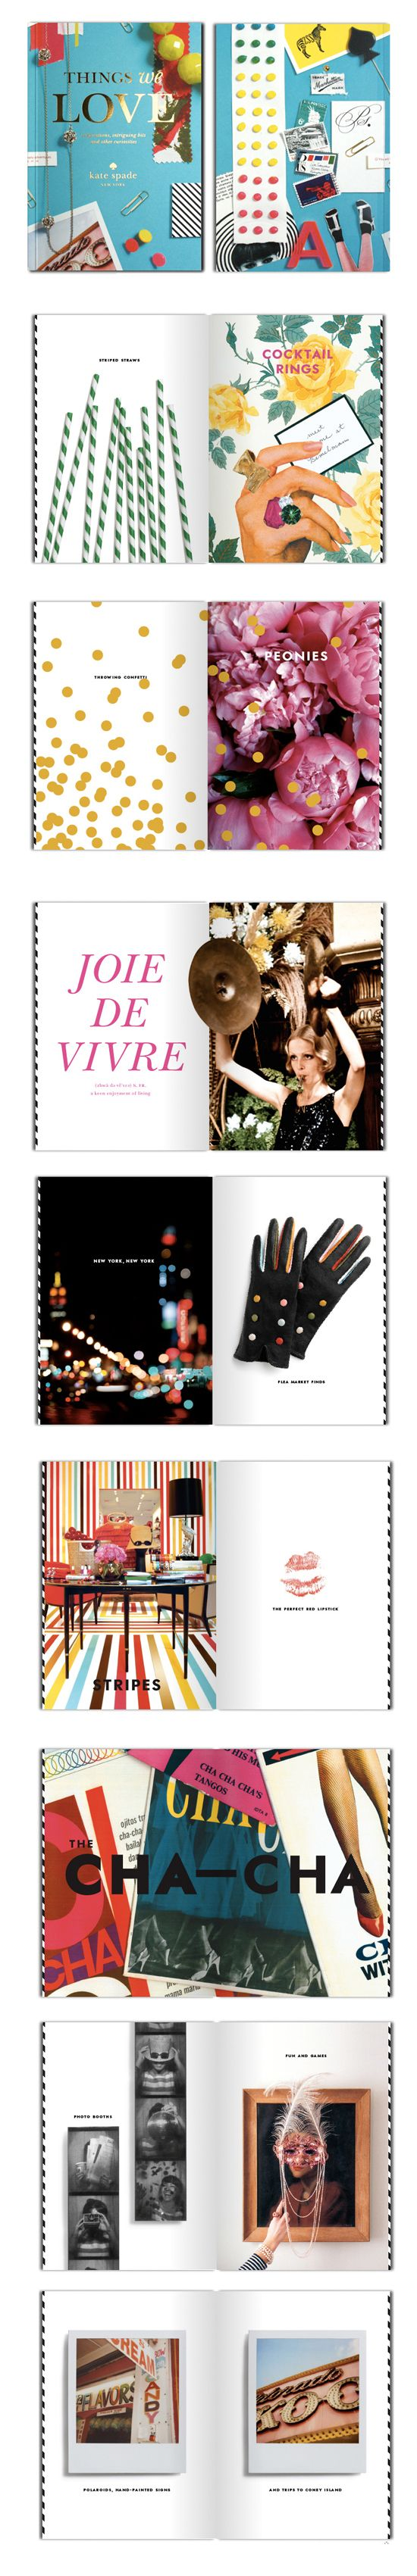 Kate Spade S Things We Love Book I Want To Grow My Collection Of Coffee Table Books Book Design Magazine Design Book Layout